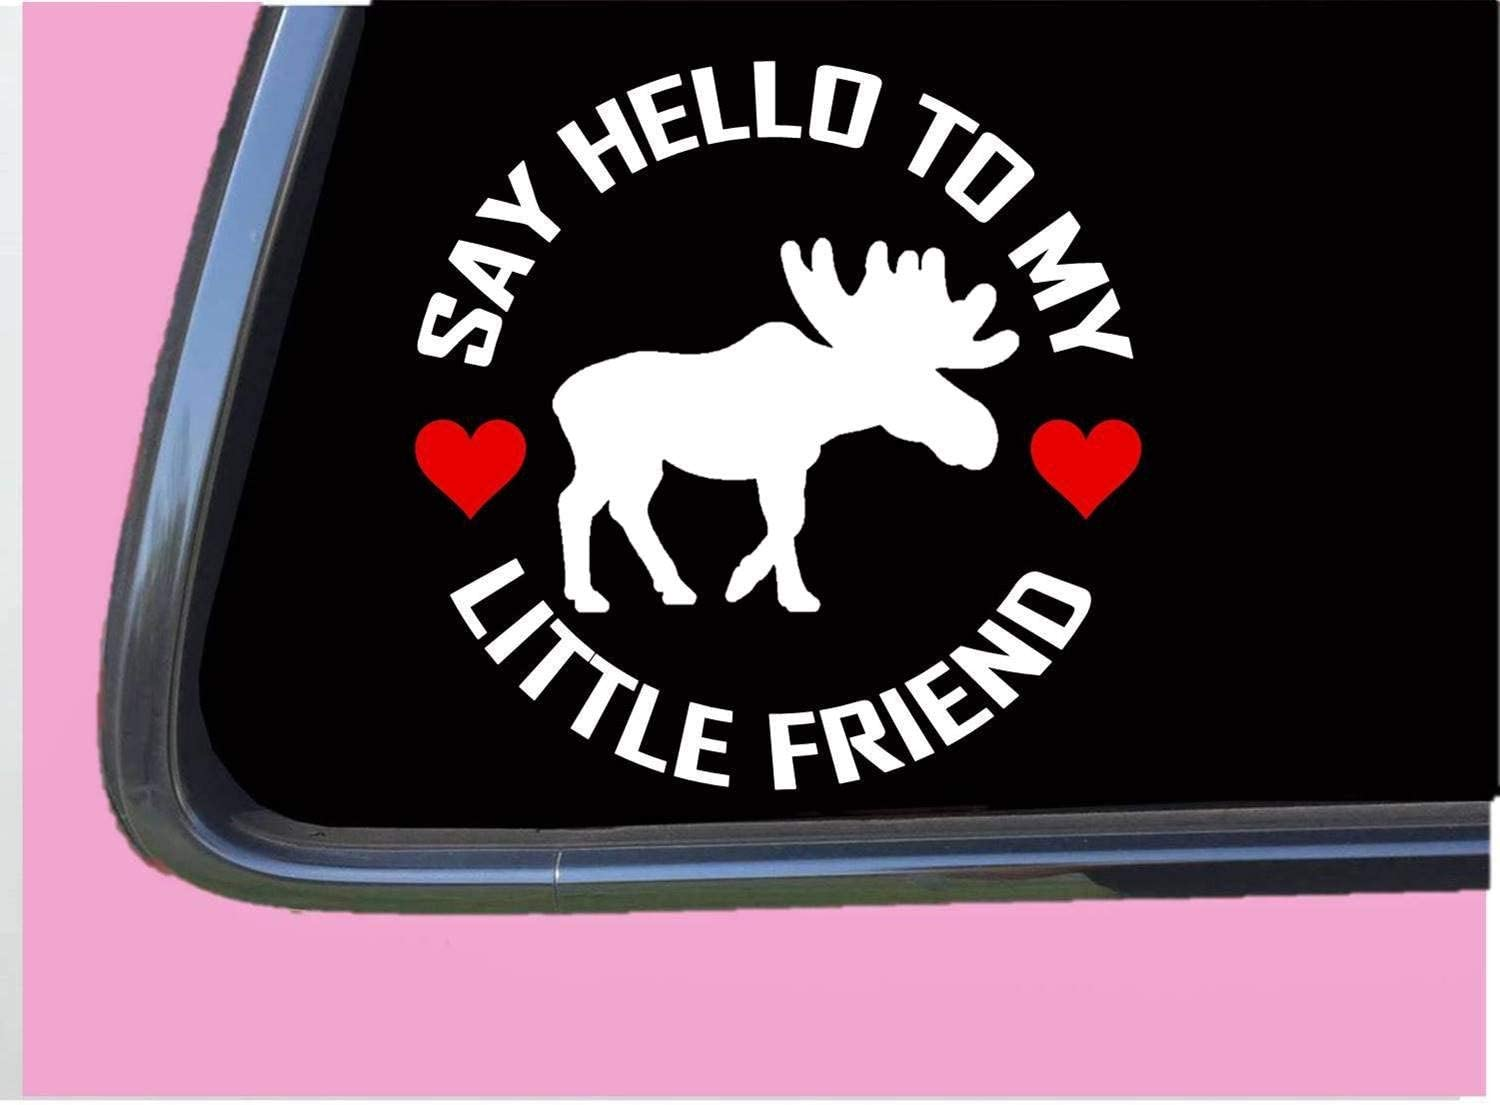 Moose My Little Friend Cars Vinyl Decal Sticker, Maine Hunting Auto Decals, Decal Sticker for Trucks, Vans, Motorcycle, Window, Laptop, Computer, Cup, Mug, Bottle, Bumpe.